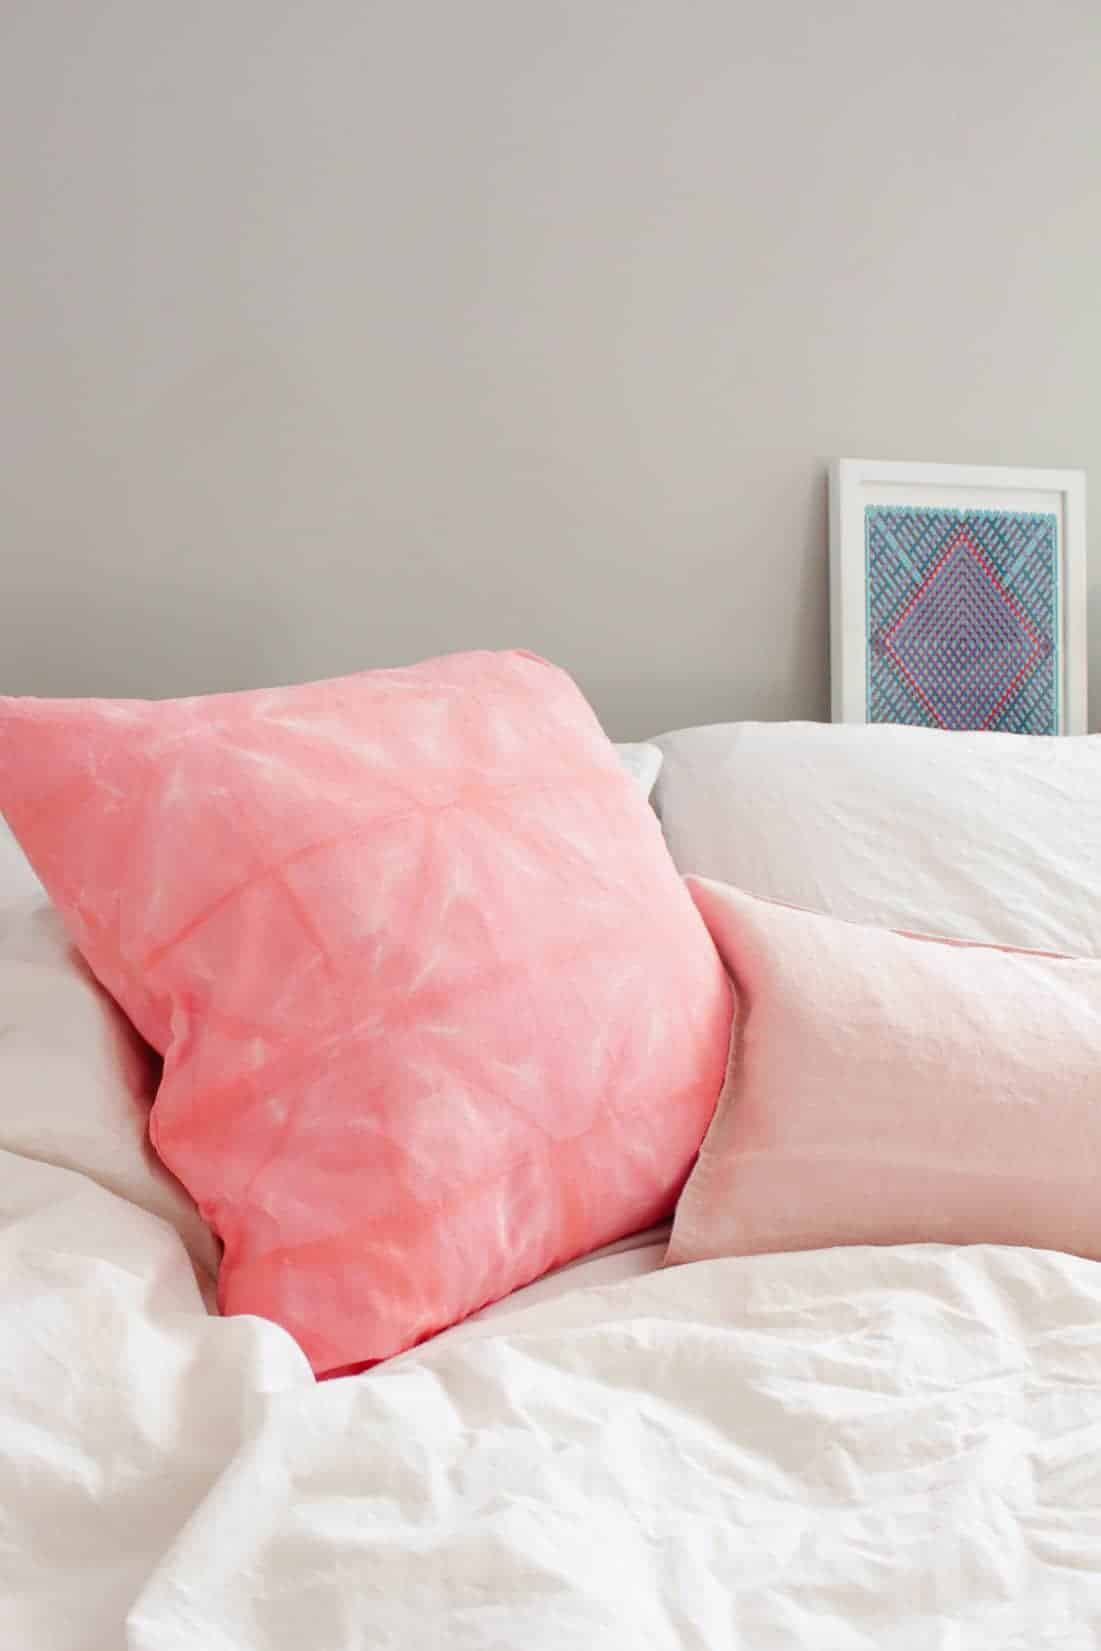 4 DIY Home Decor Projects to Try: DIY Pink Shibori Style Throw Pillow on Sugar & Cloth | Fish & Bull